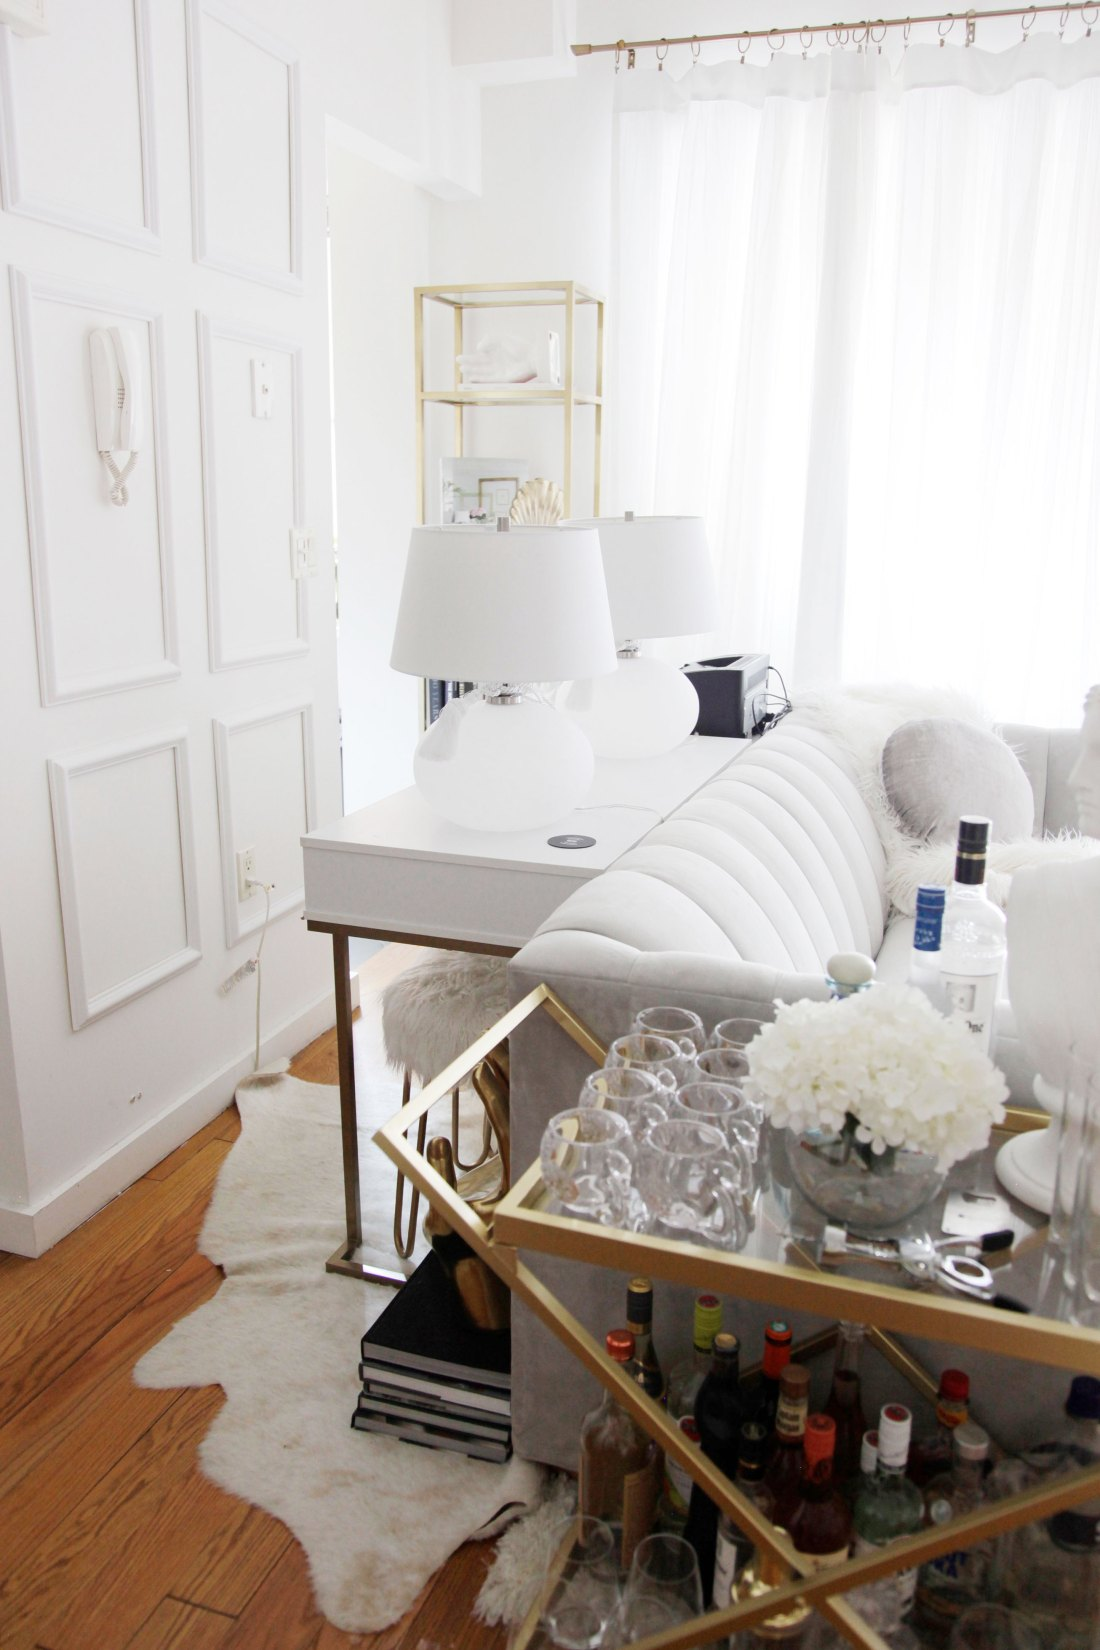 Struggle to decorate your rental apartment or studio apartment? Decorating your rental apartment, on a budget, can be super easy with these helpful tips. Here is what I learned after renting for 4 years: #studioapartmentideas #studioapartmentdecorating #rentaldecorating #rentalapartmentdecorating #rentalhomedecoratingdiy #smallapartmentdecorating #smallapartmentideas